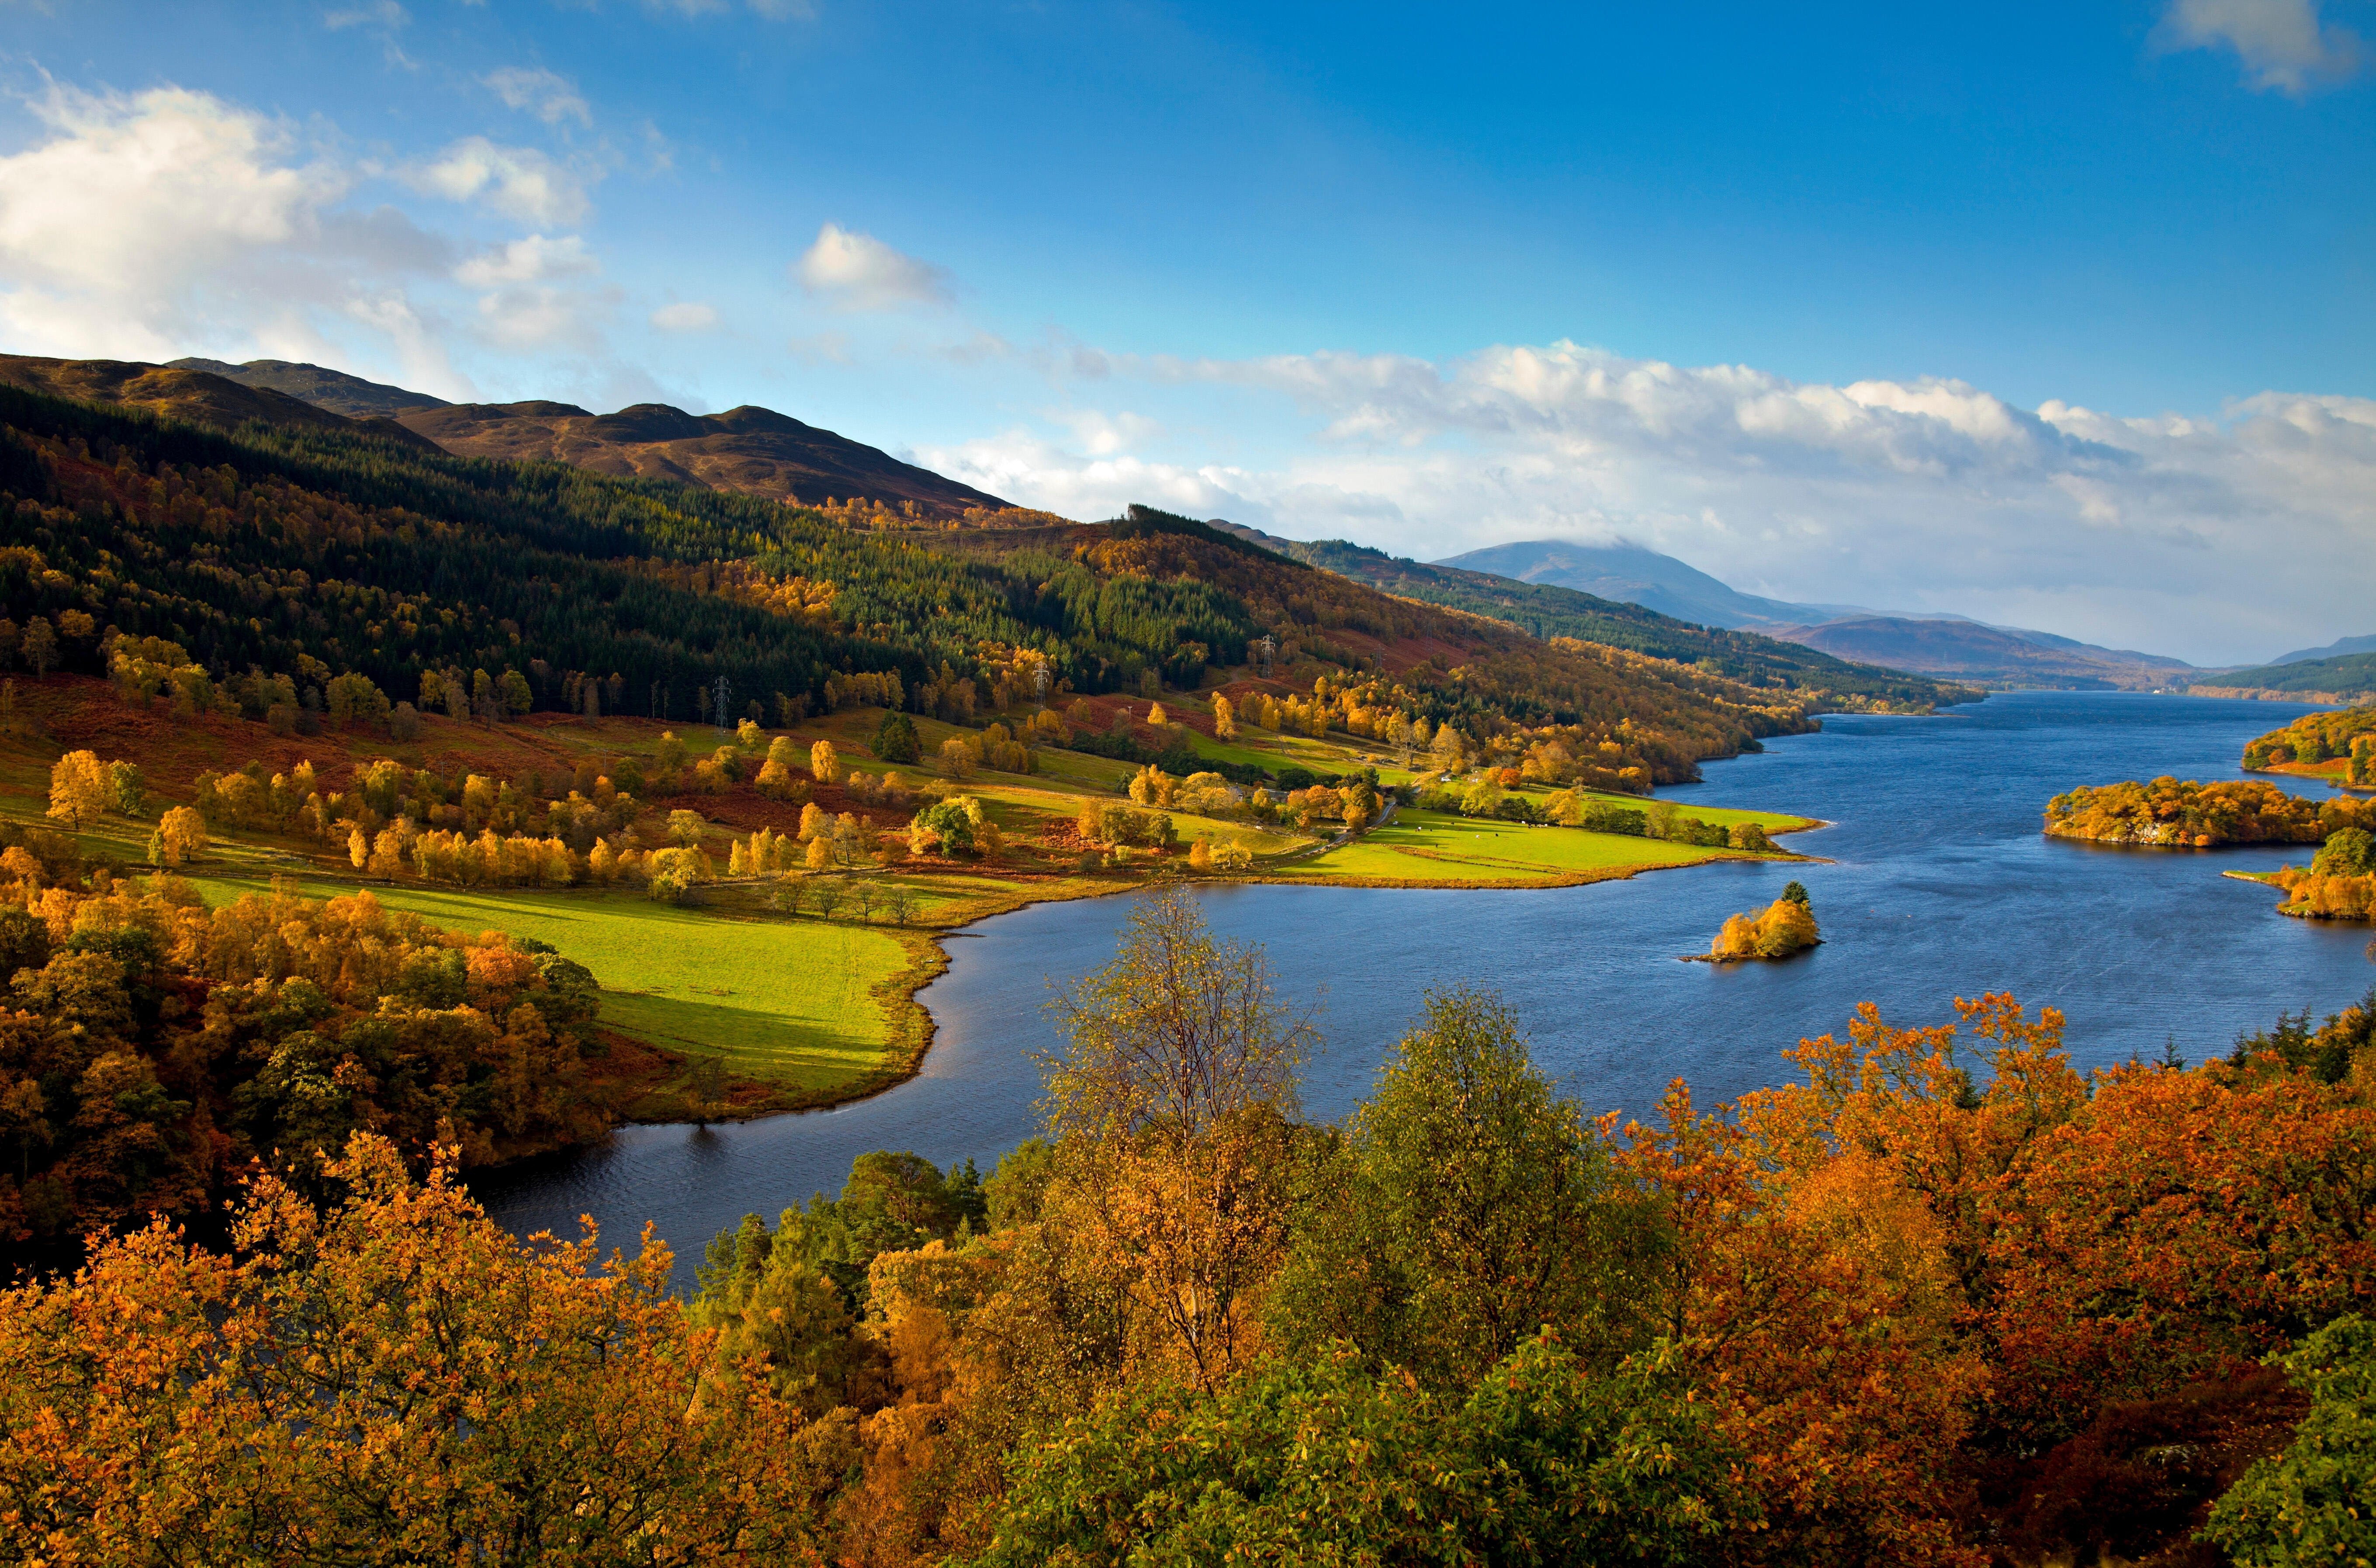 Queens View, Pitlochry © Scottishcreative / Alamy Stock Photo